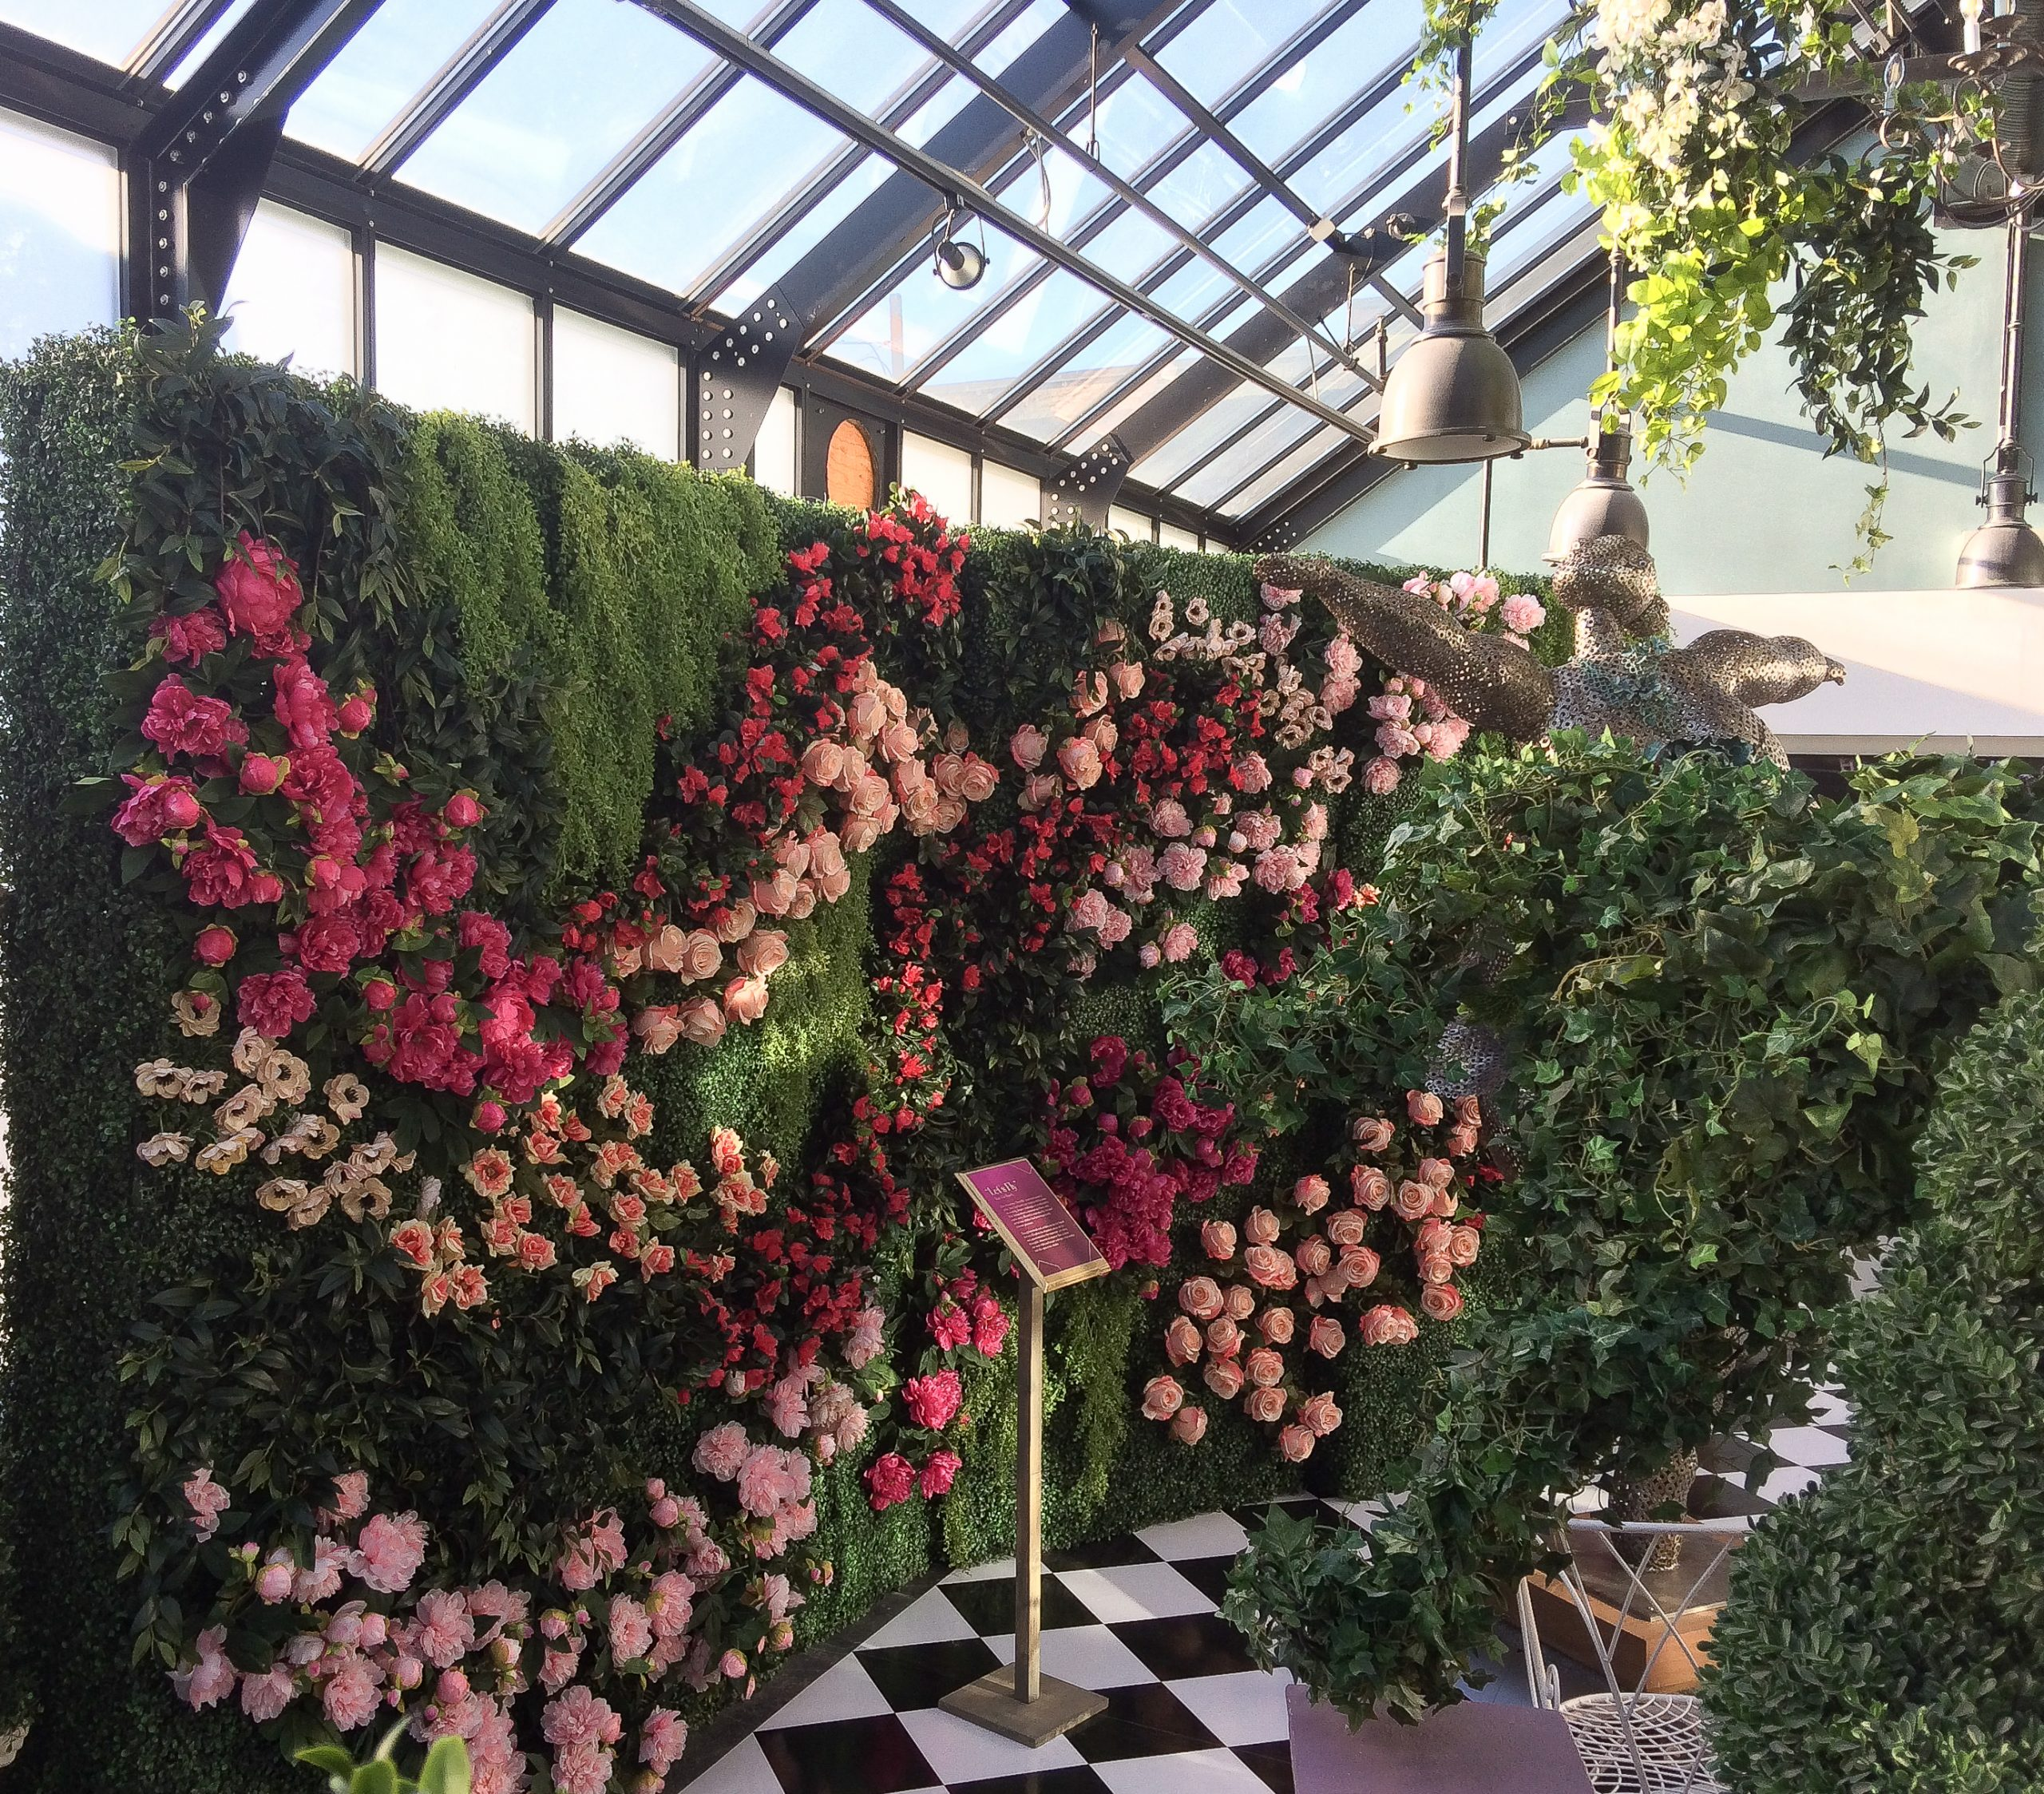 flower wall on boxwood hedge for garden party alice in wonderland theme for art of wonder